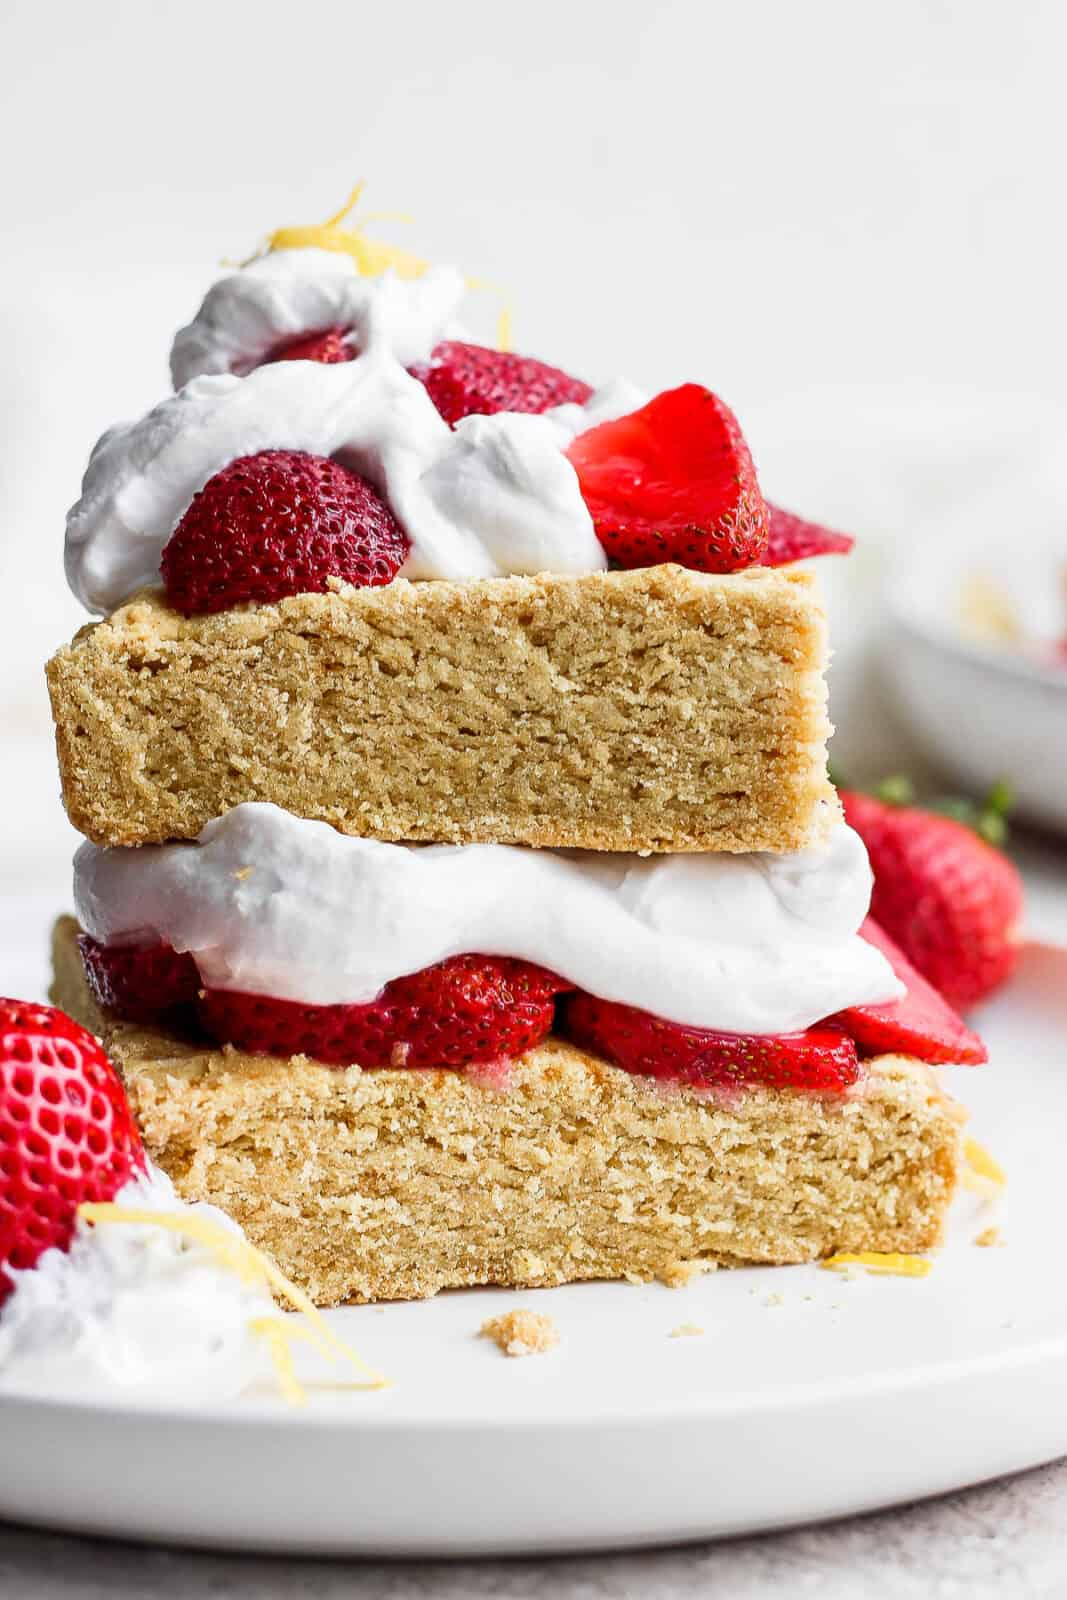 Strawberry shortcake with strawberries and dairy free whipped cream.